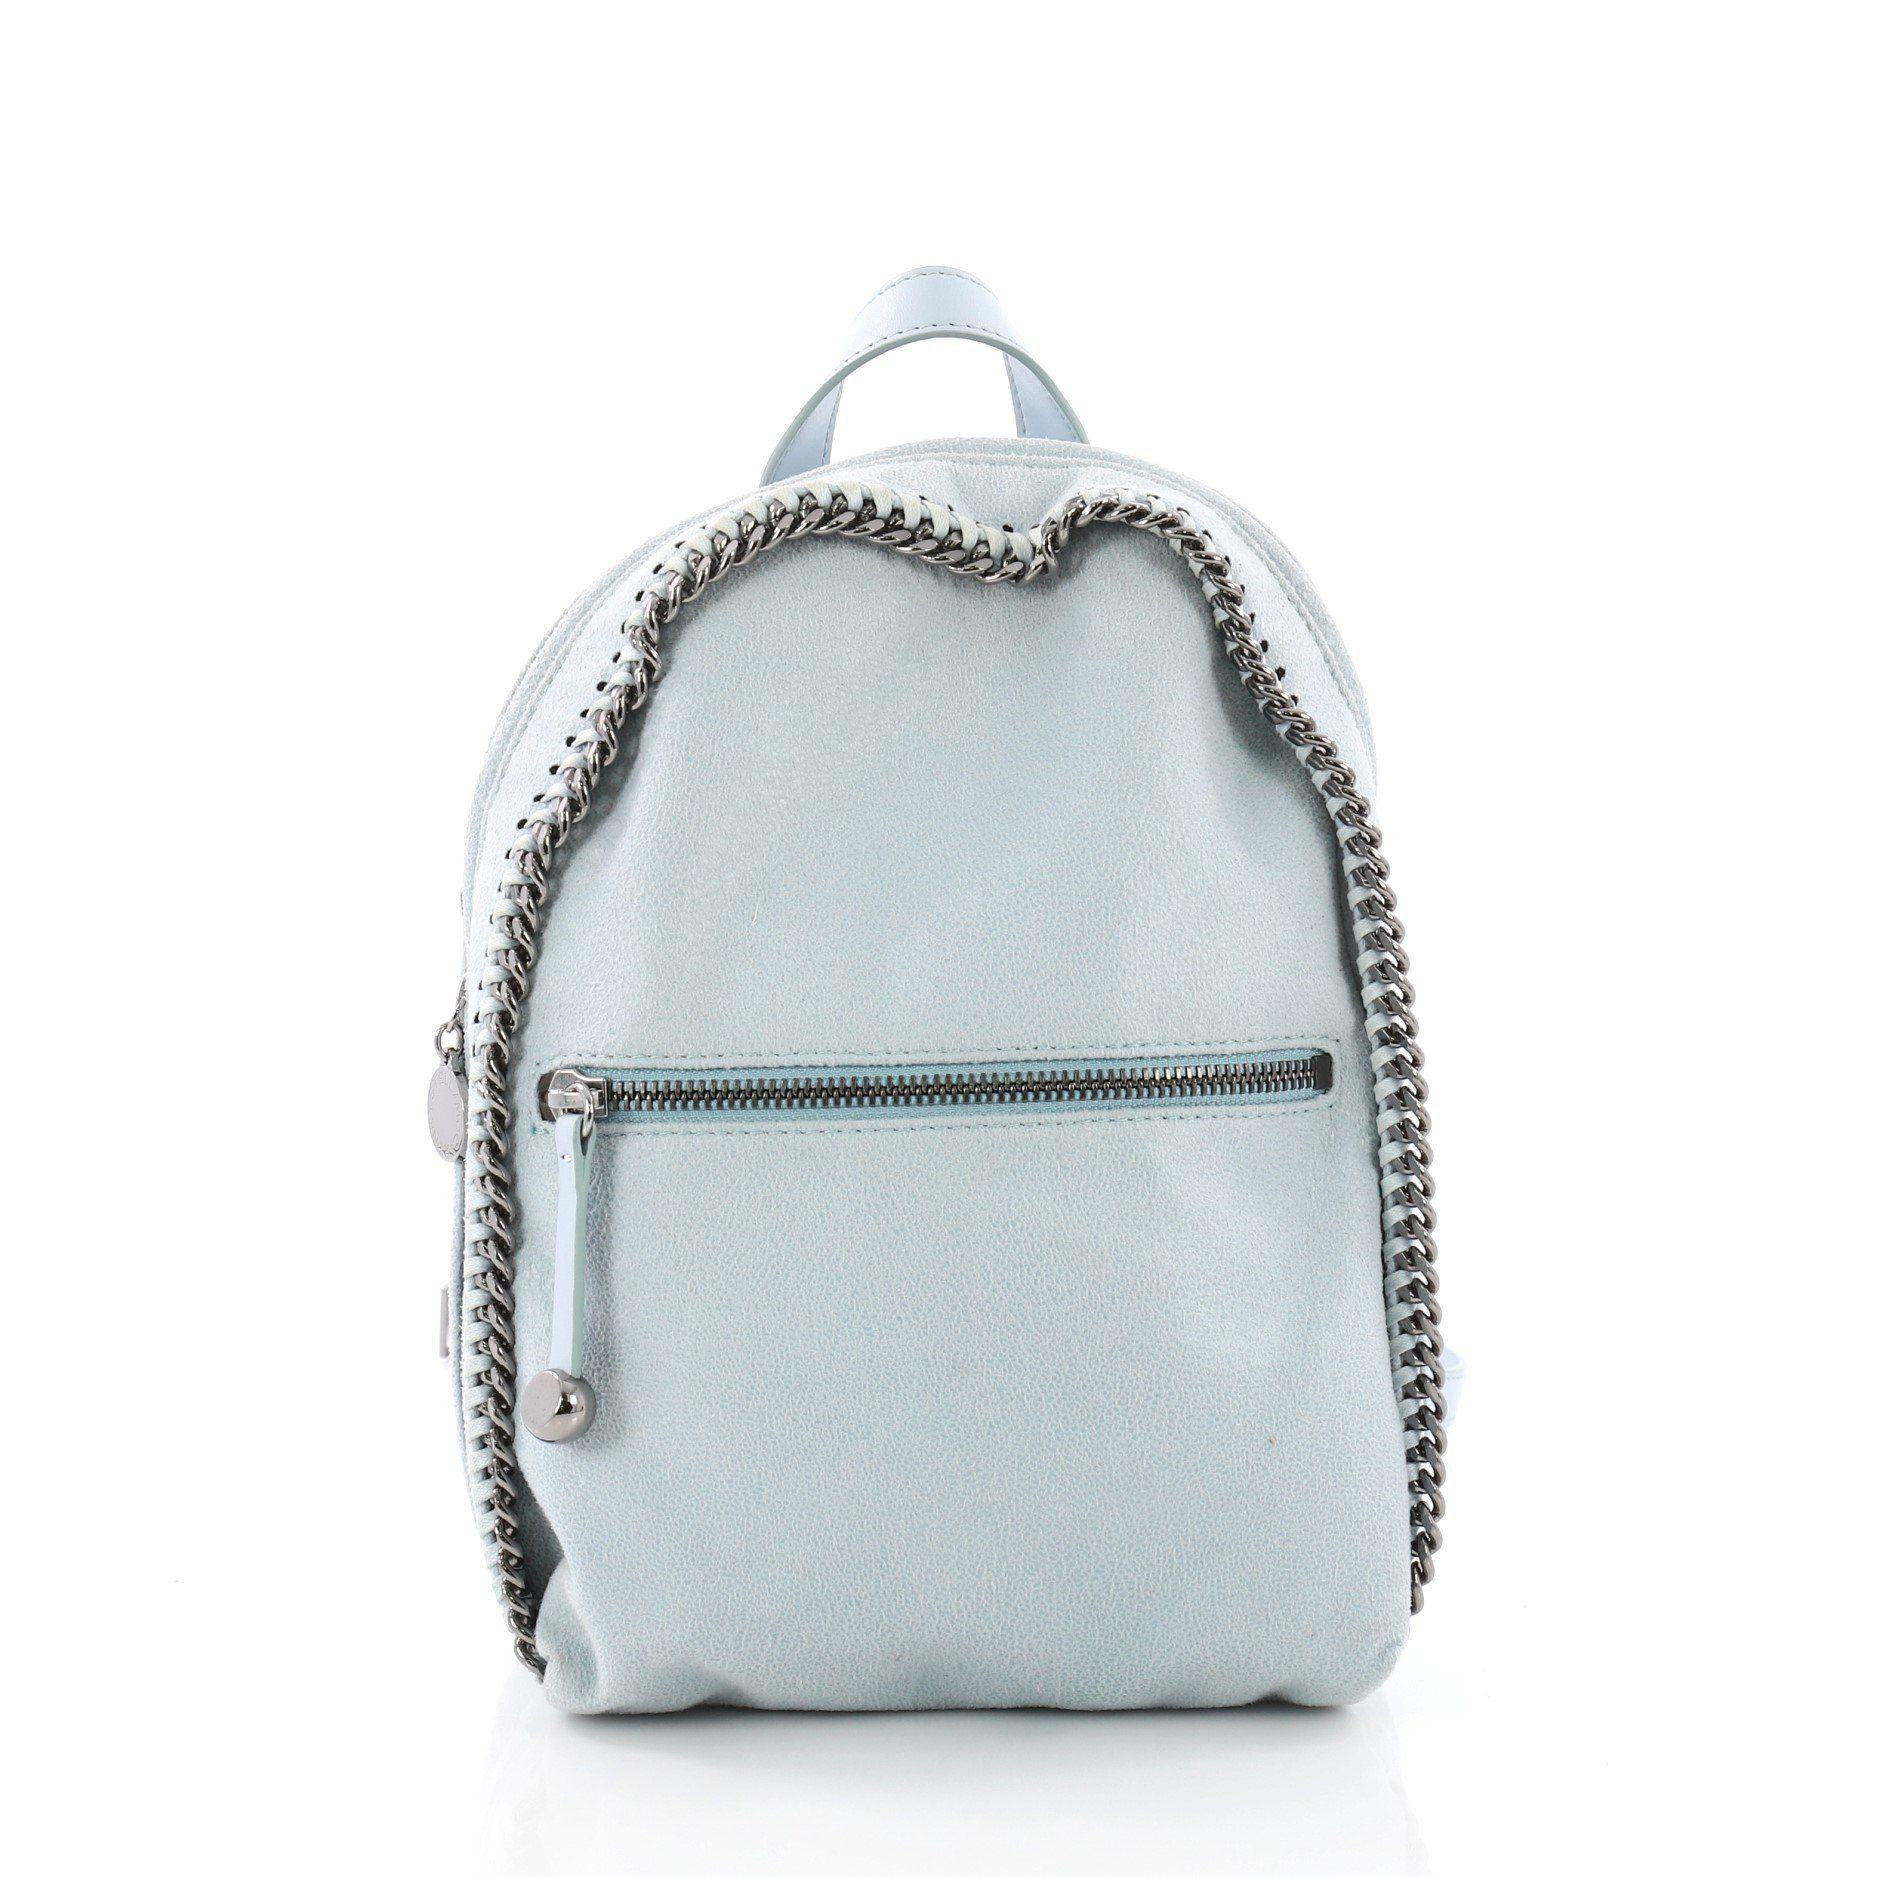 3aff5a07035d Stella McCartney. Women s Blue Pre Owned Falabella Front Zip Backpack  Shaggy Deer Mini